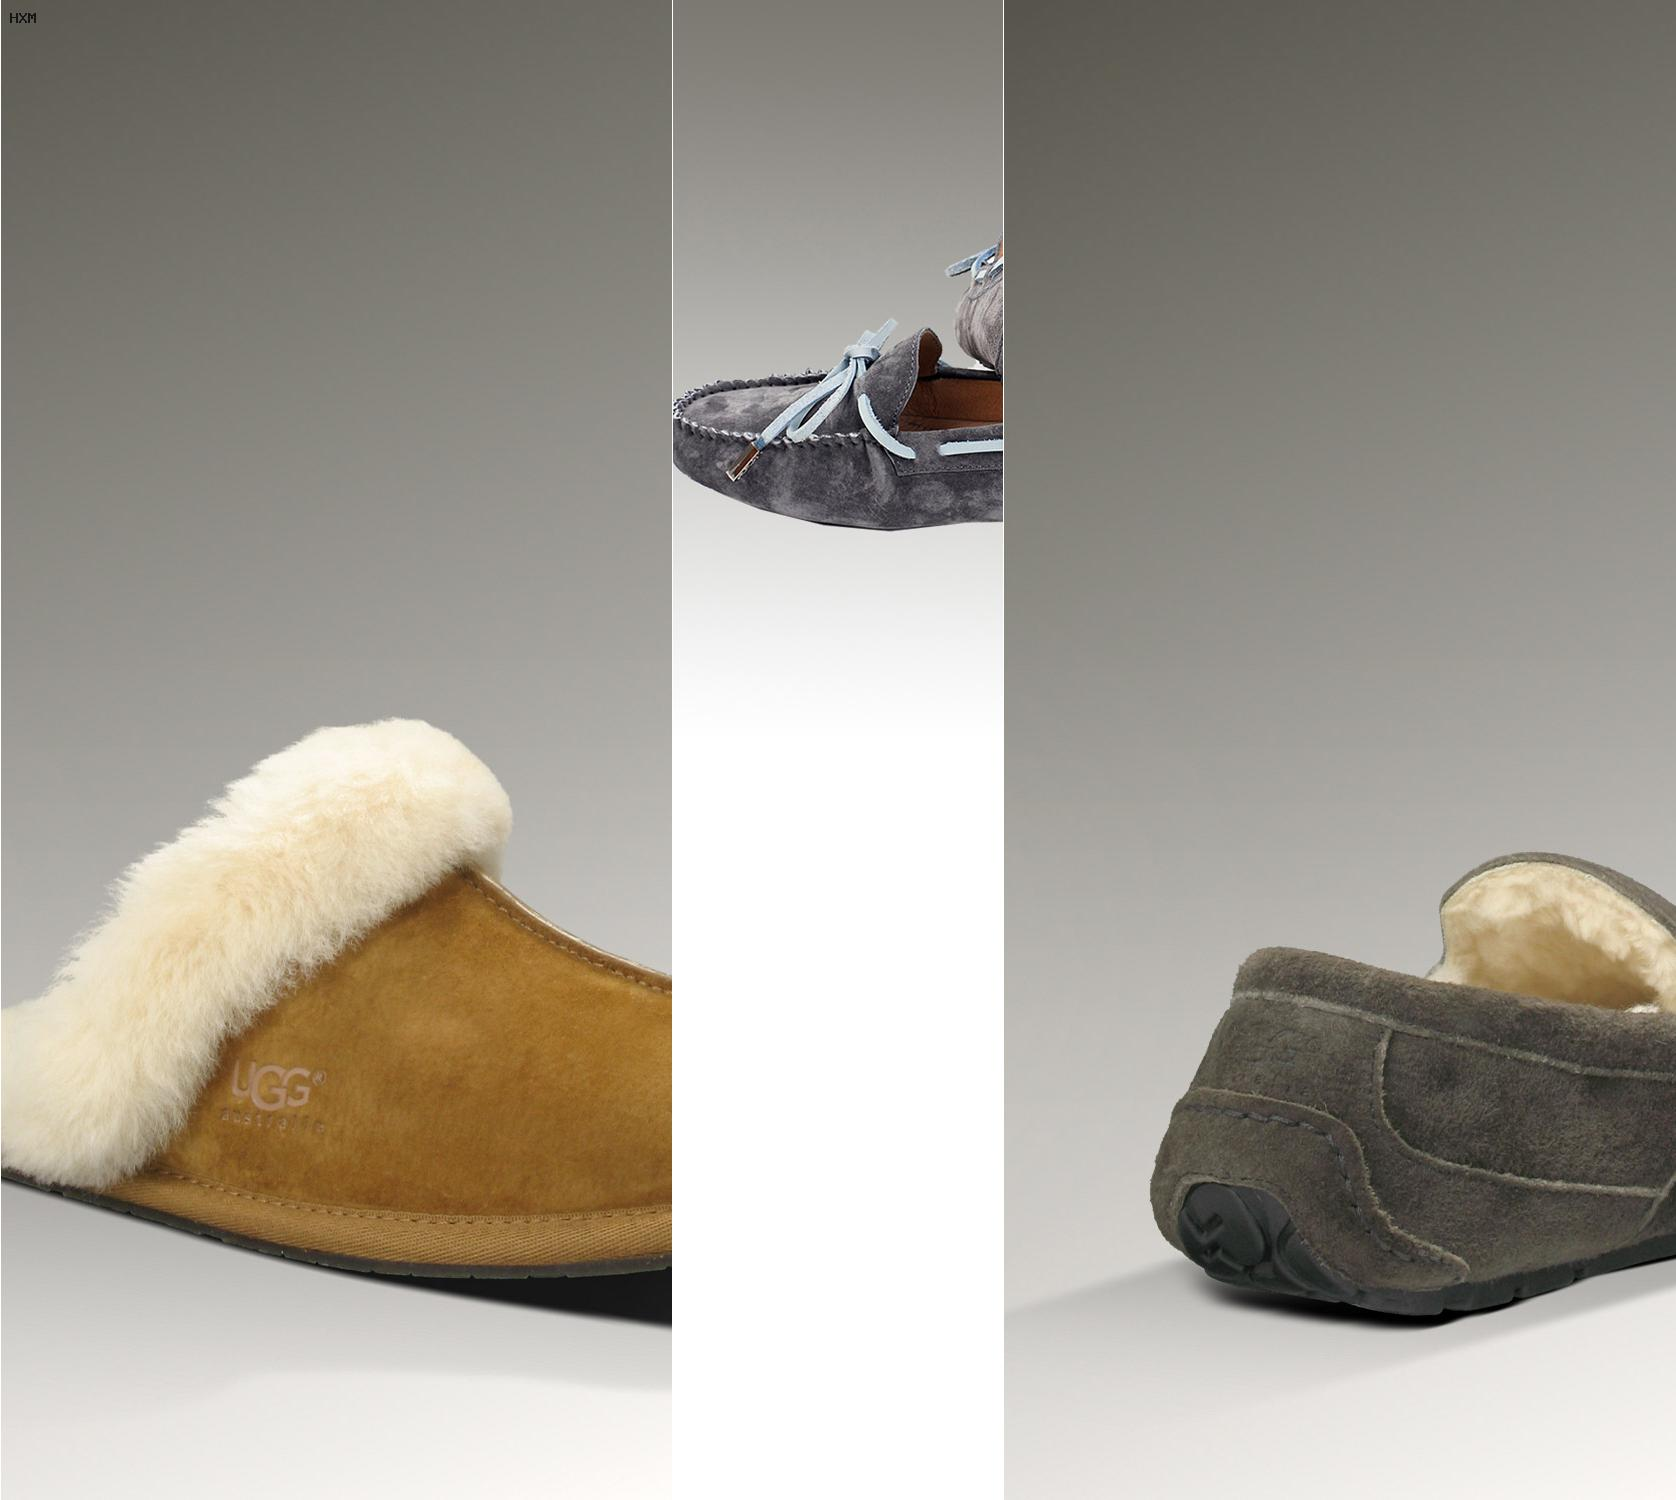 ugg lilou bootie